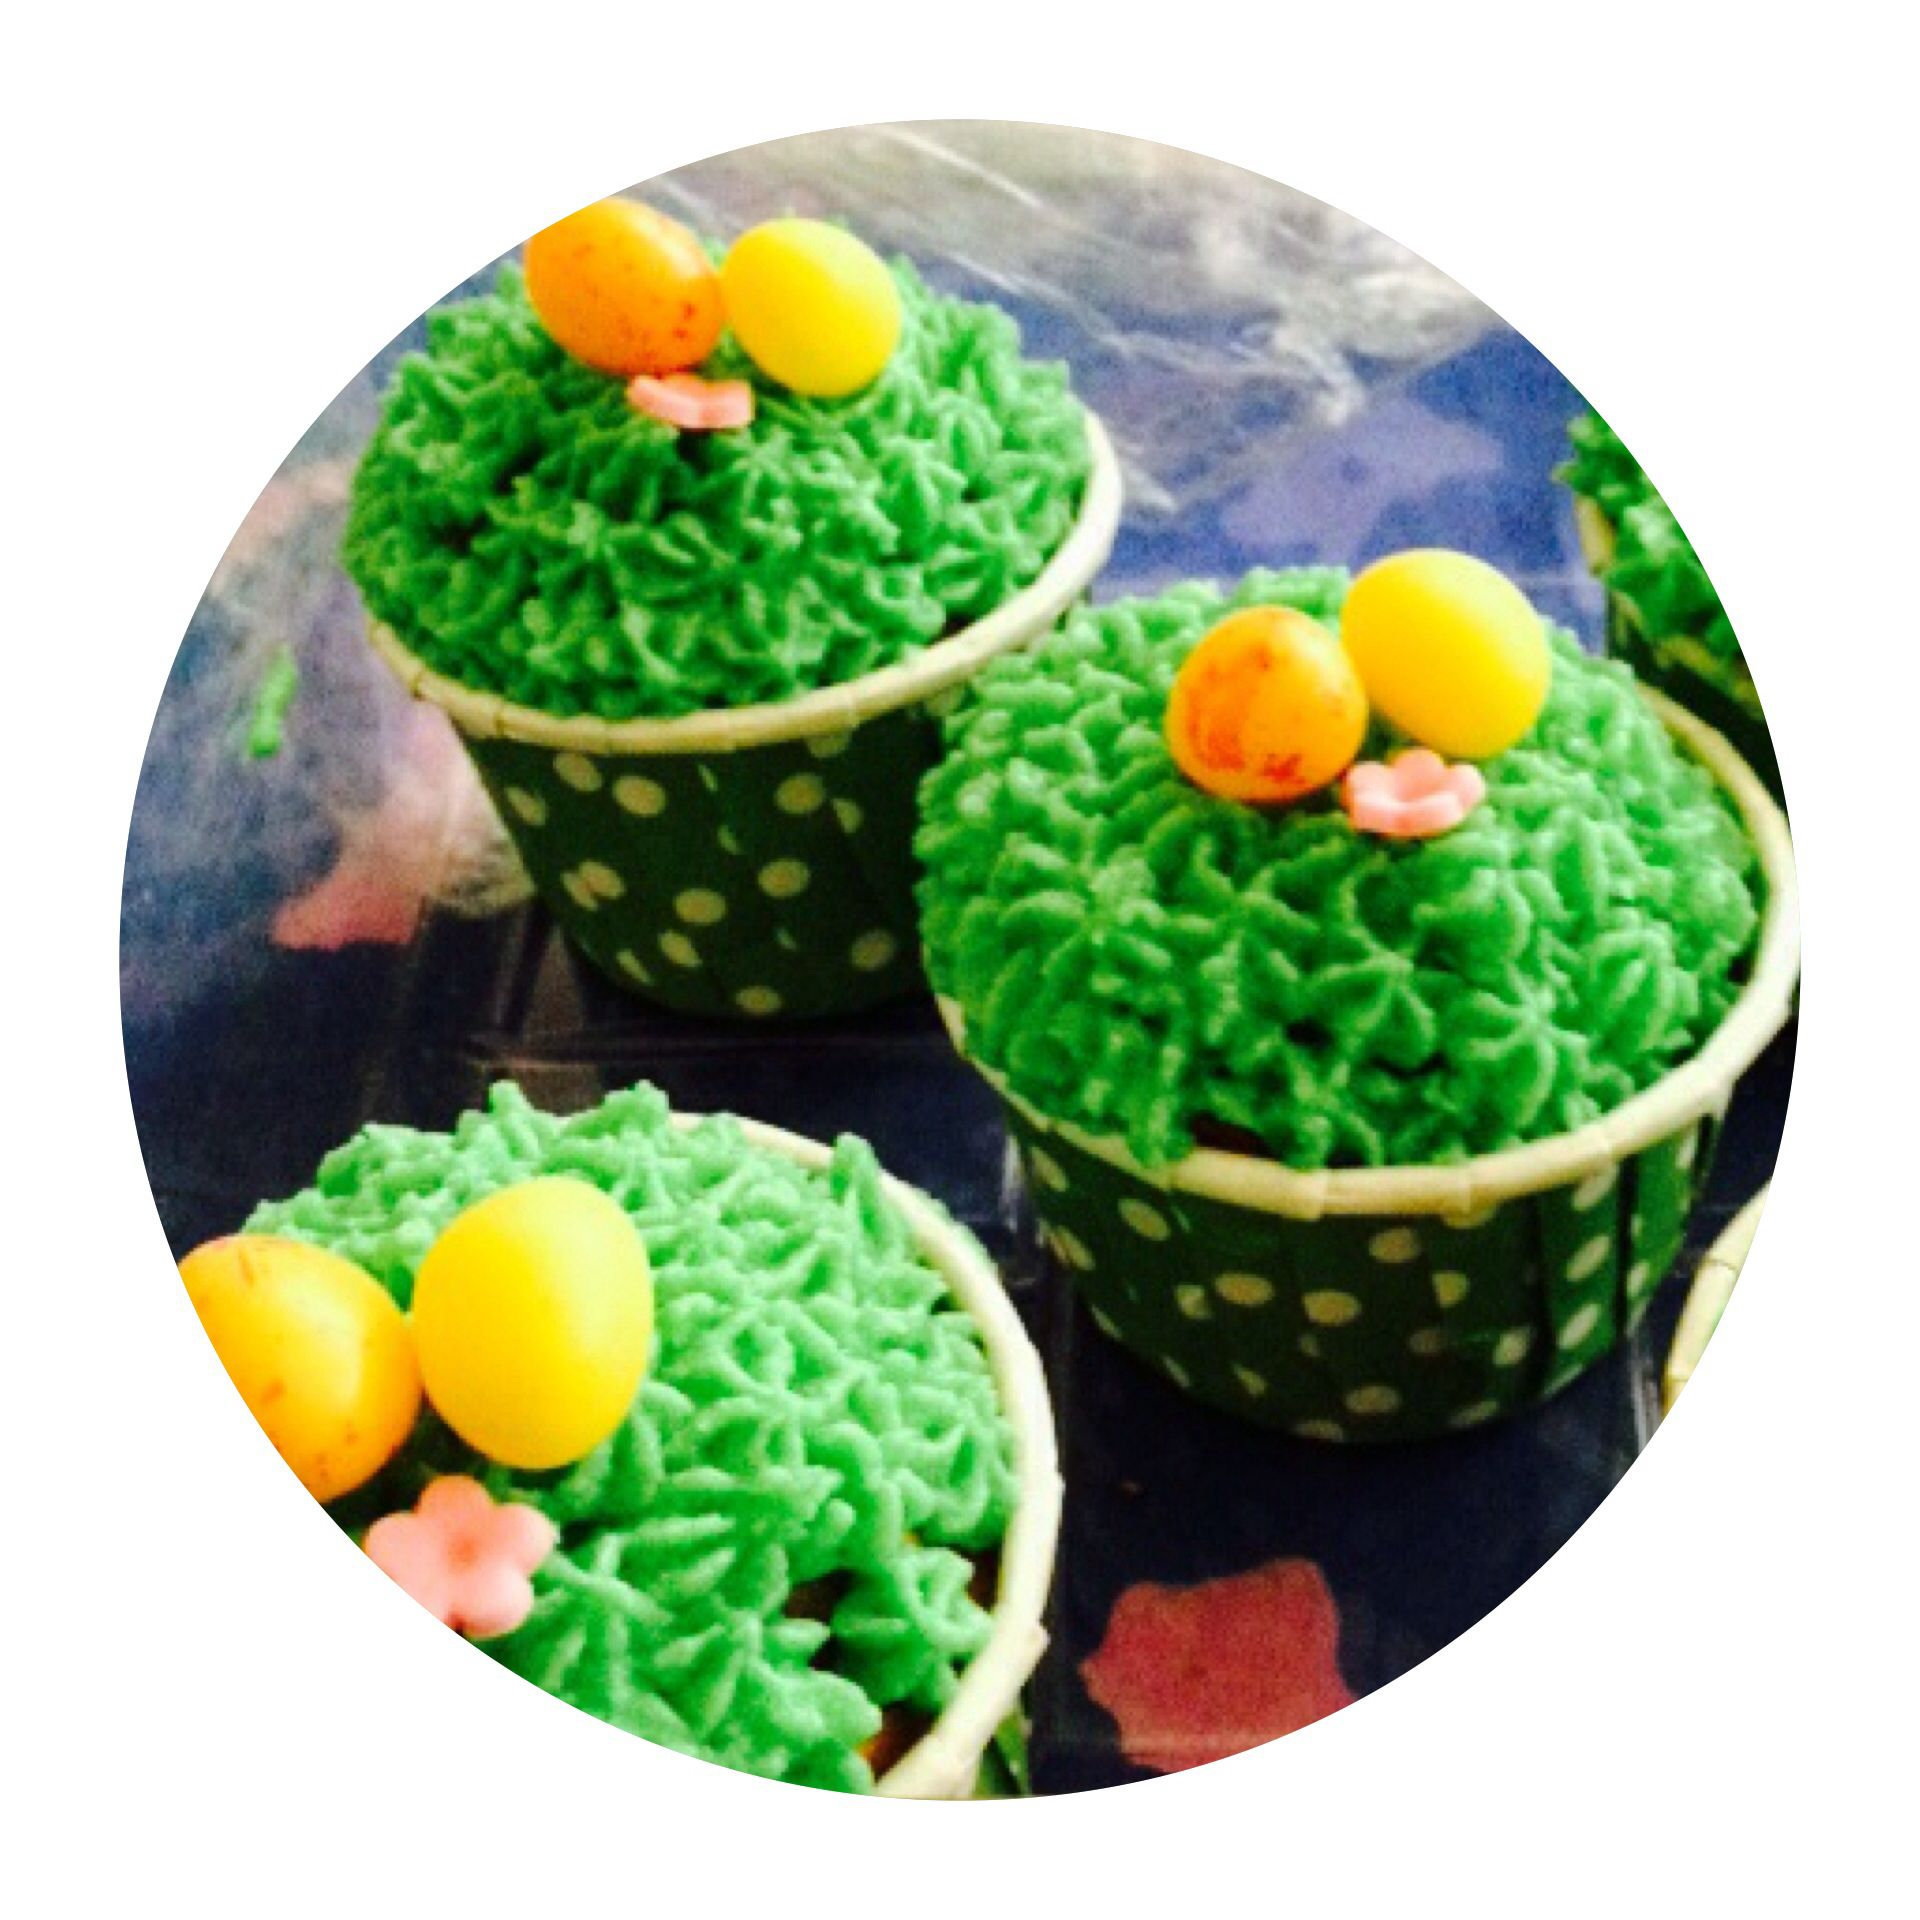 Second round of my Easter cupcakes ! Used a star tip instead as the grass tip was frustrating me!